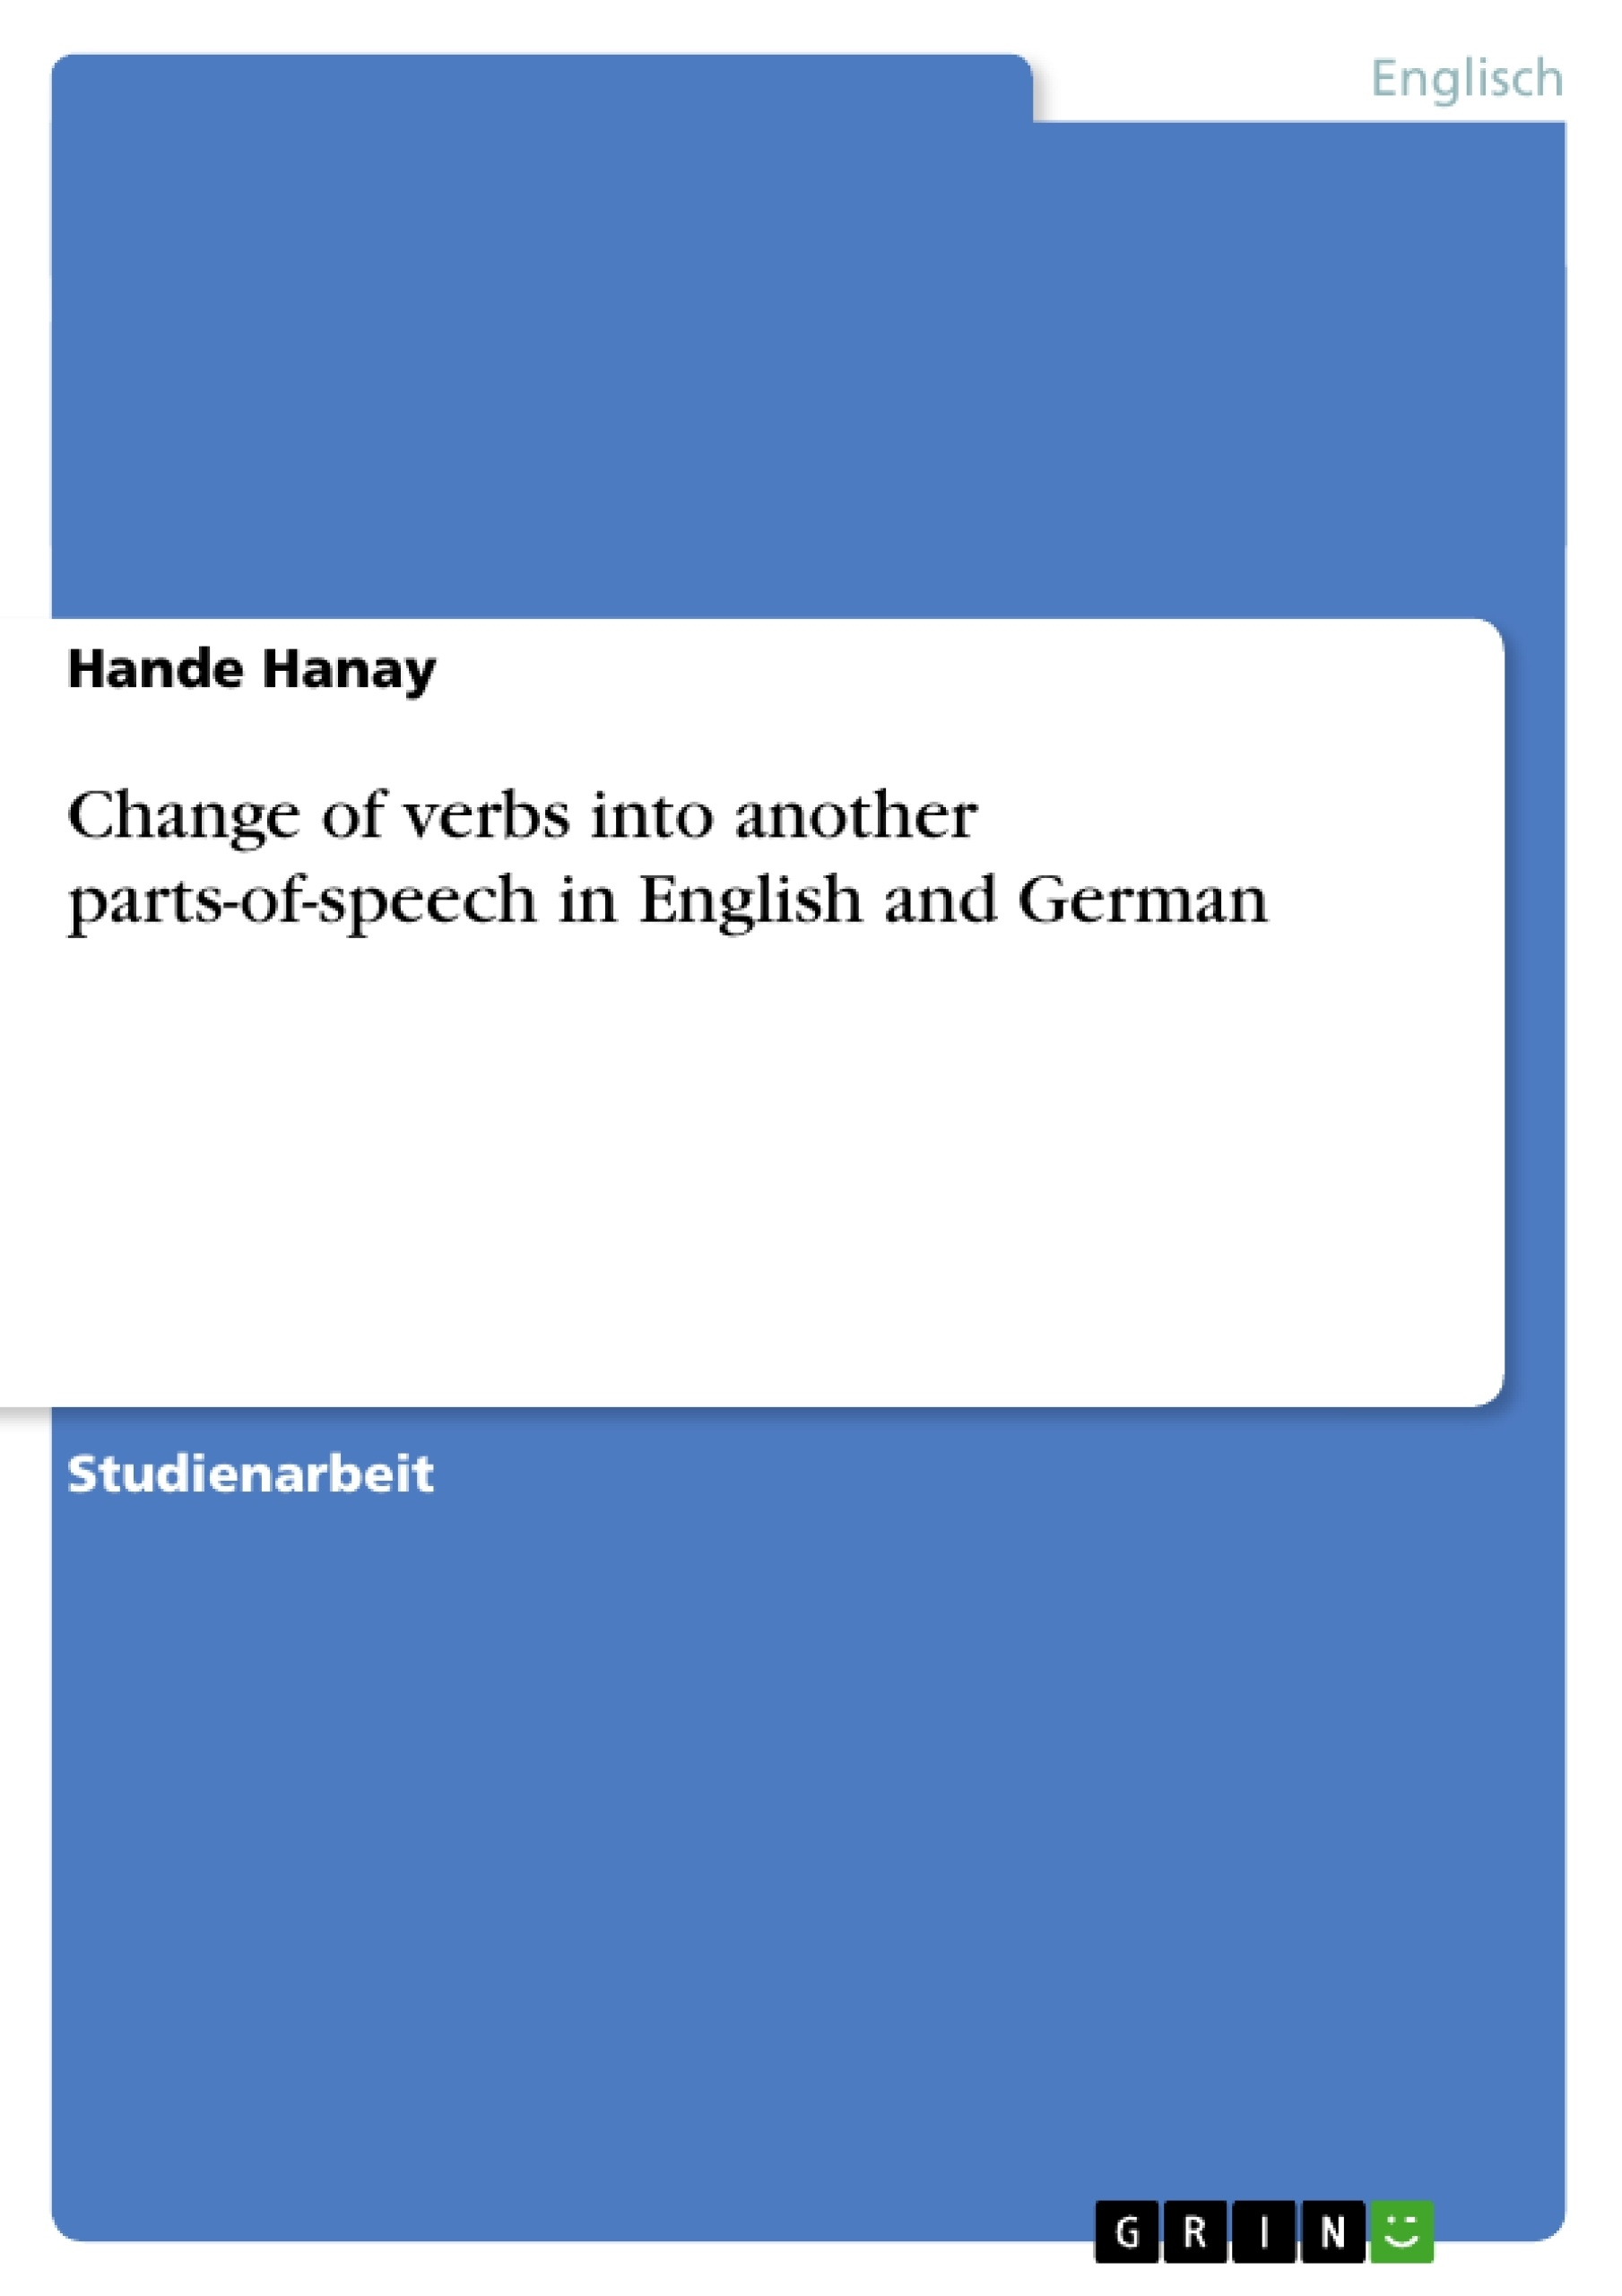 Titel: Change of verbs into another parts-of-speech in English and German